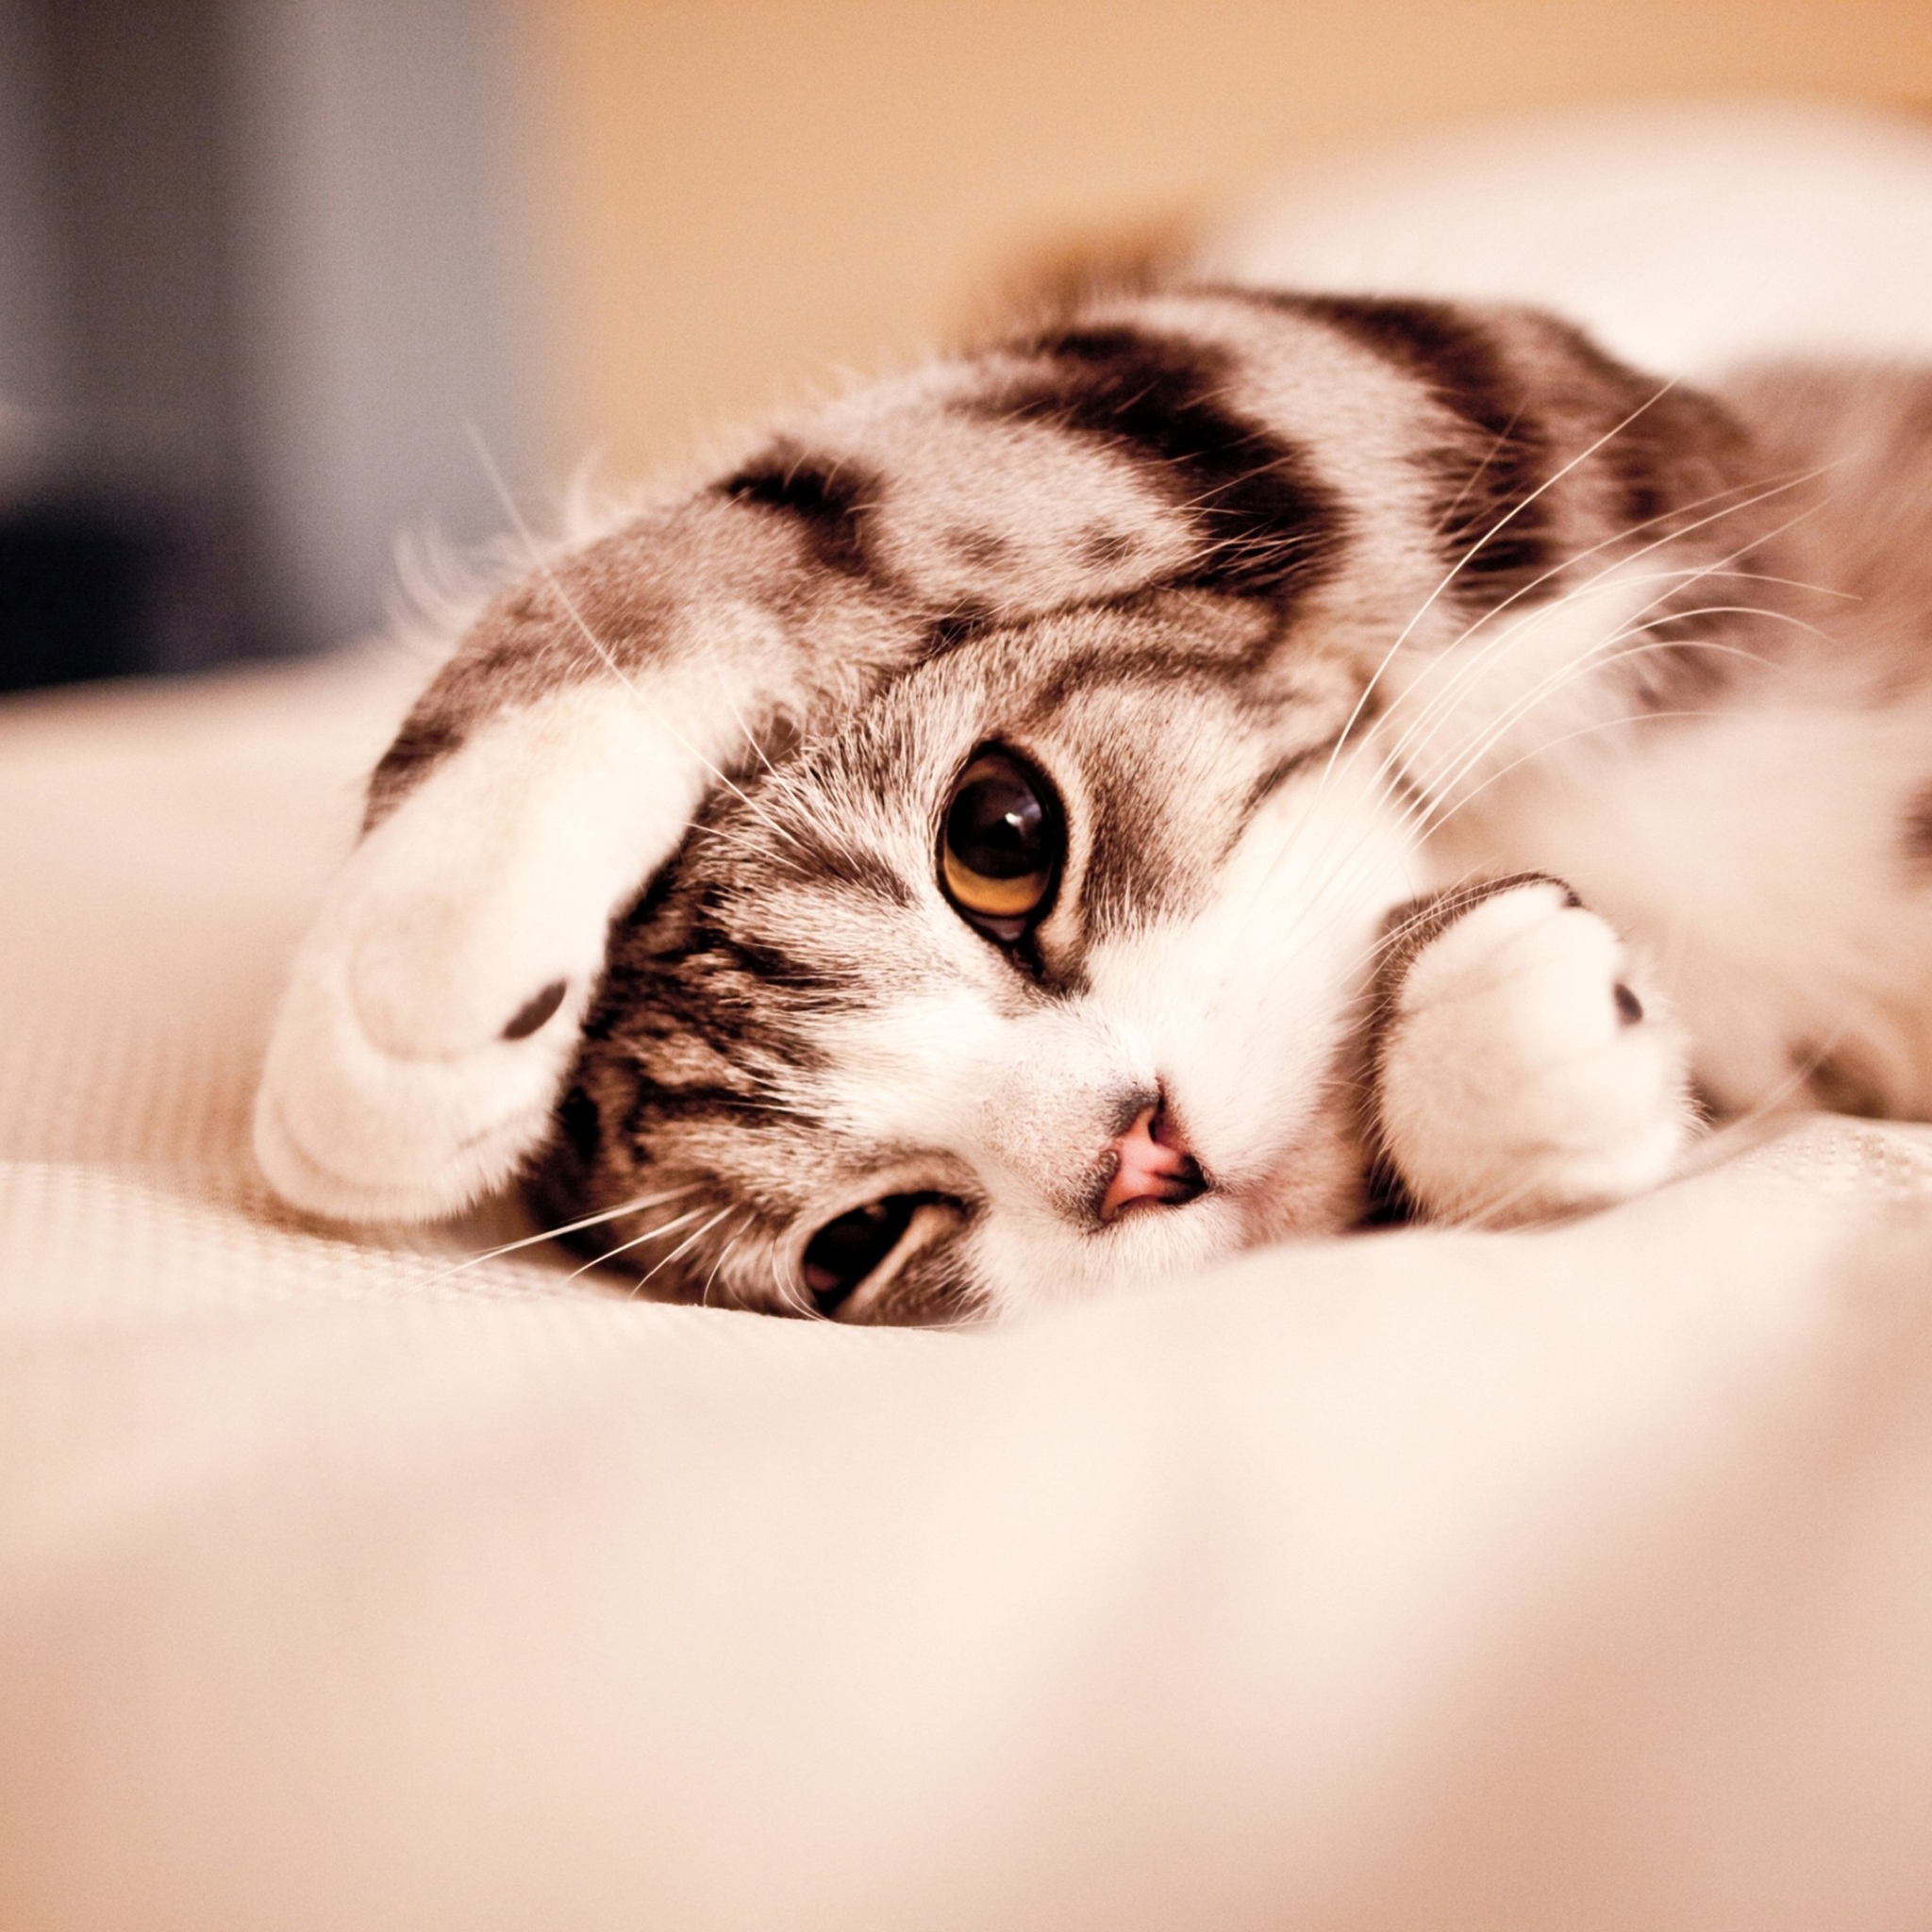 Cat Wallpapers For Iphone: Cute Cat Wallpaper For IPad